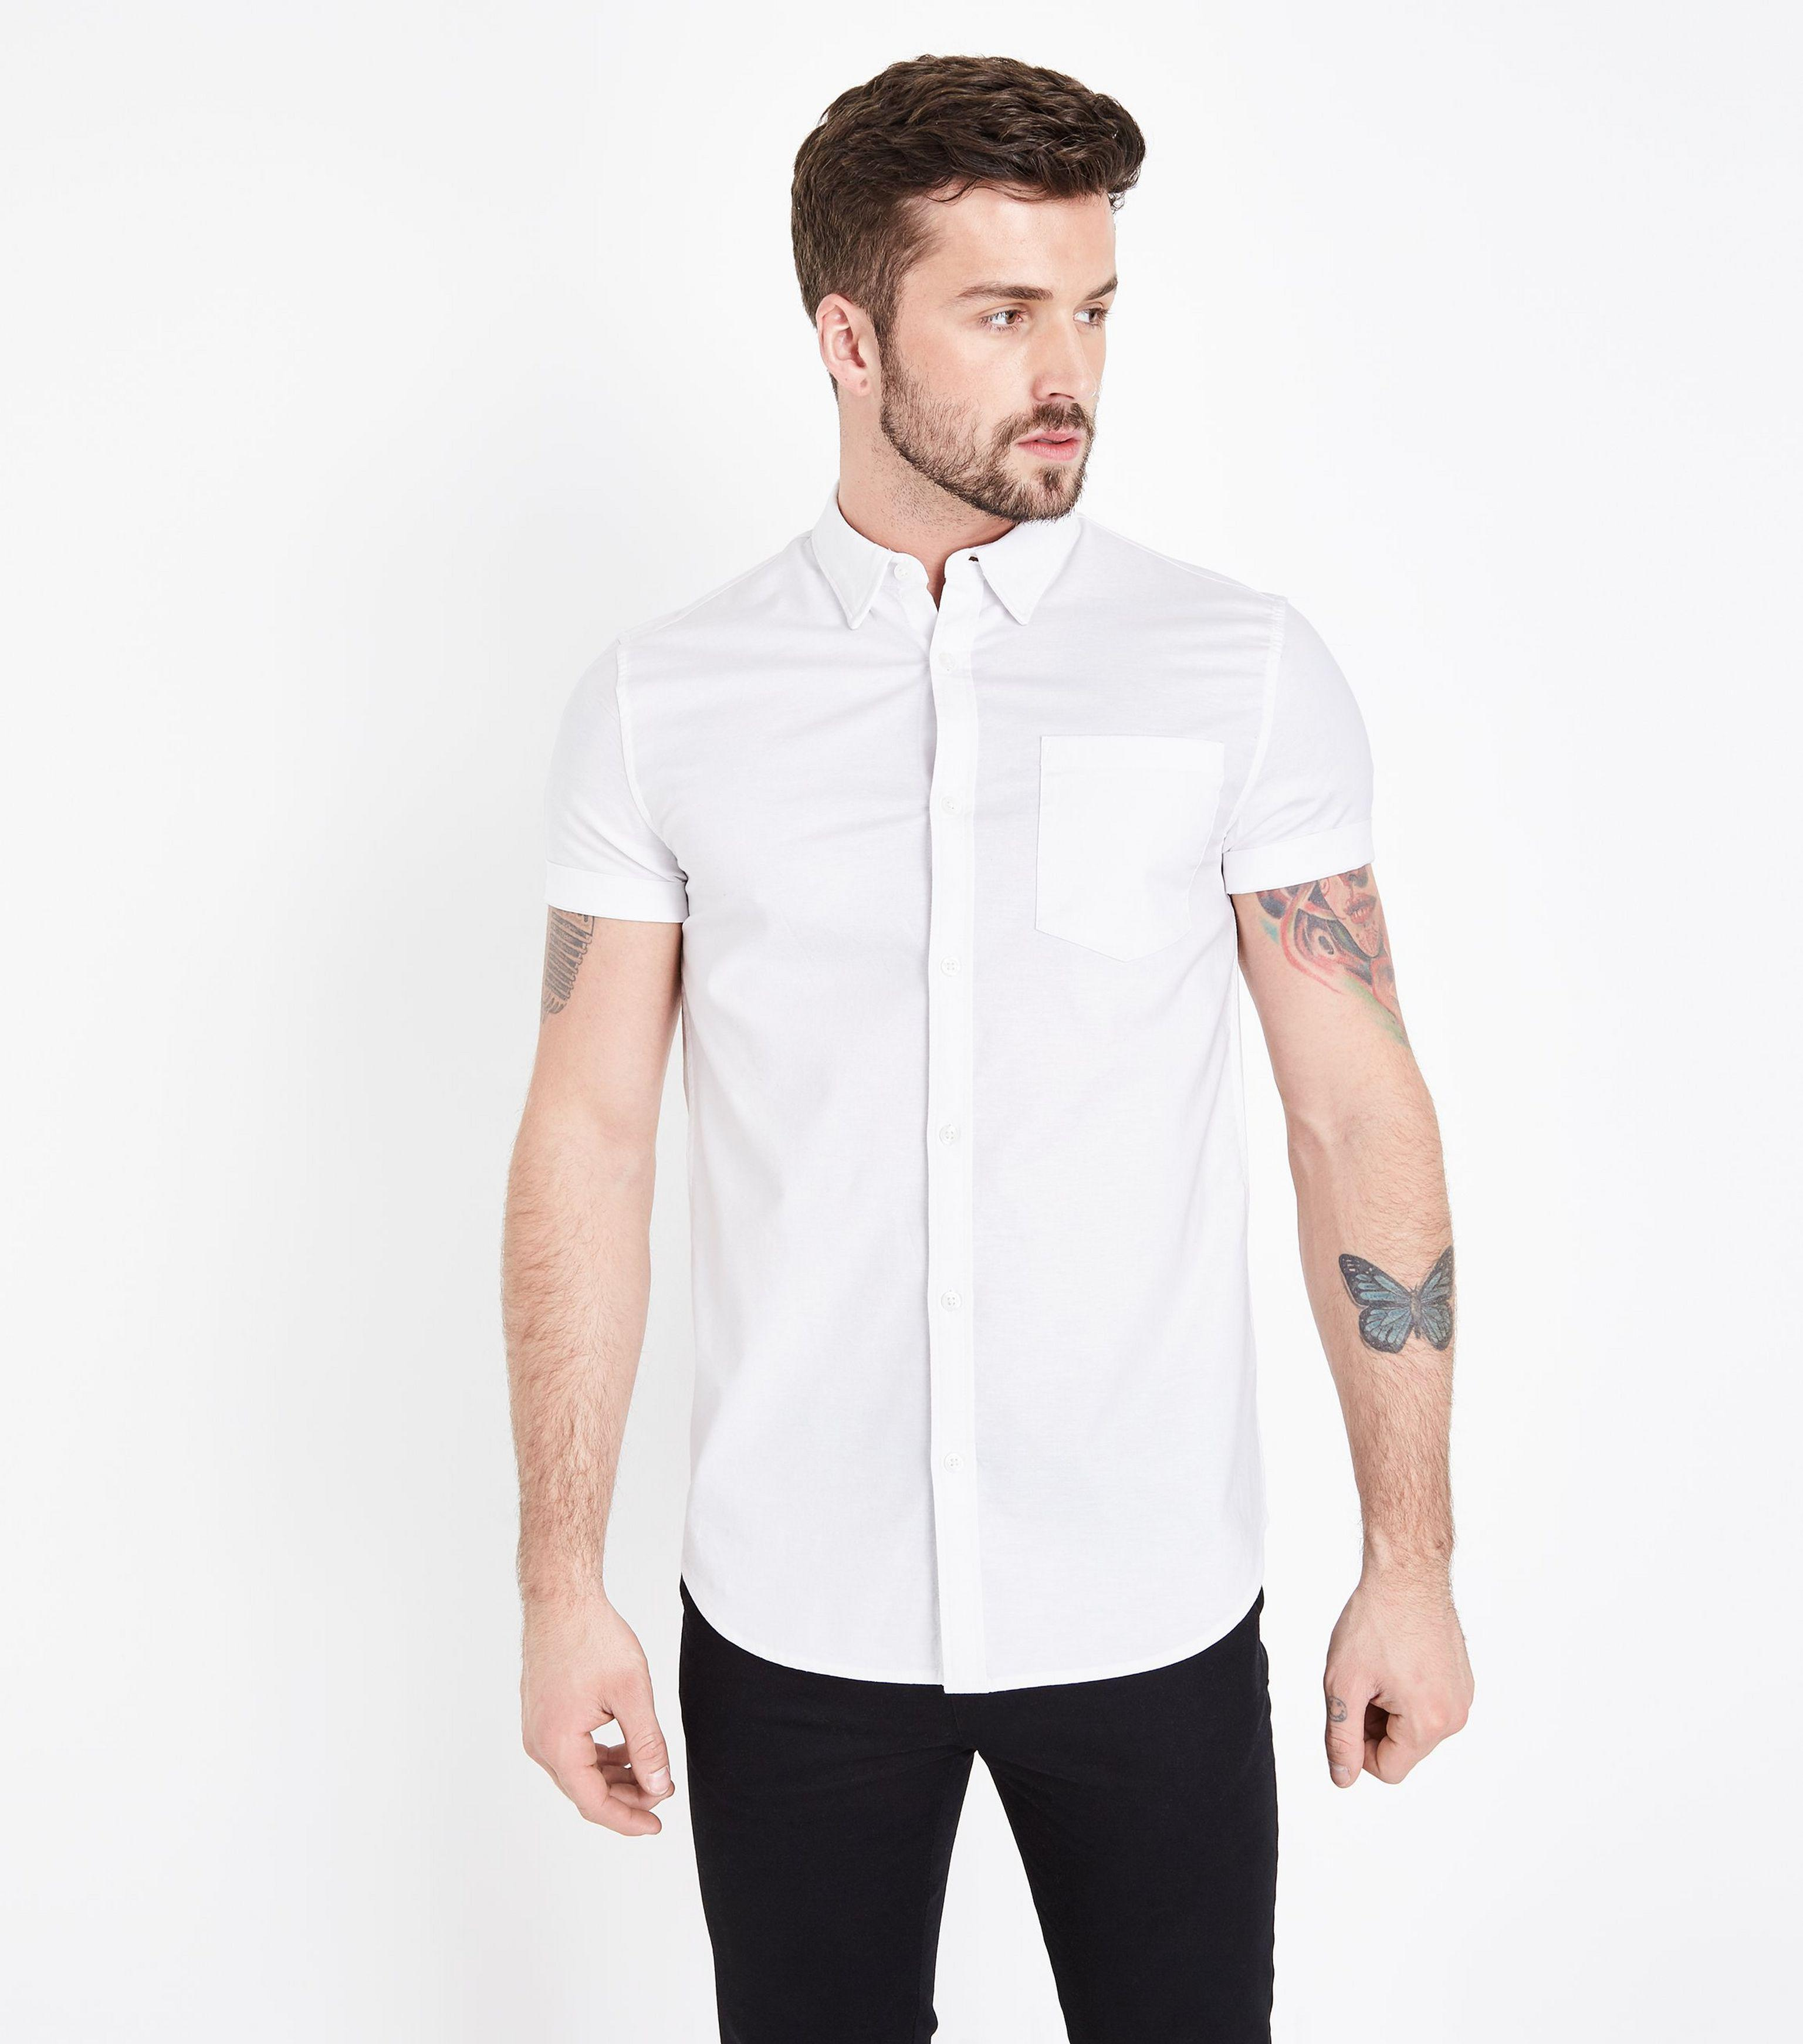 94a927b1 New Look White Short Sleeve Muscle Fit Oxford Shirt in White for Men ...